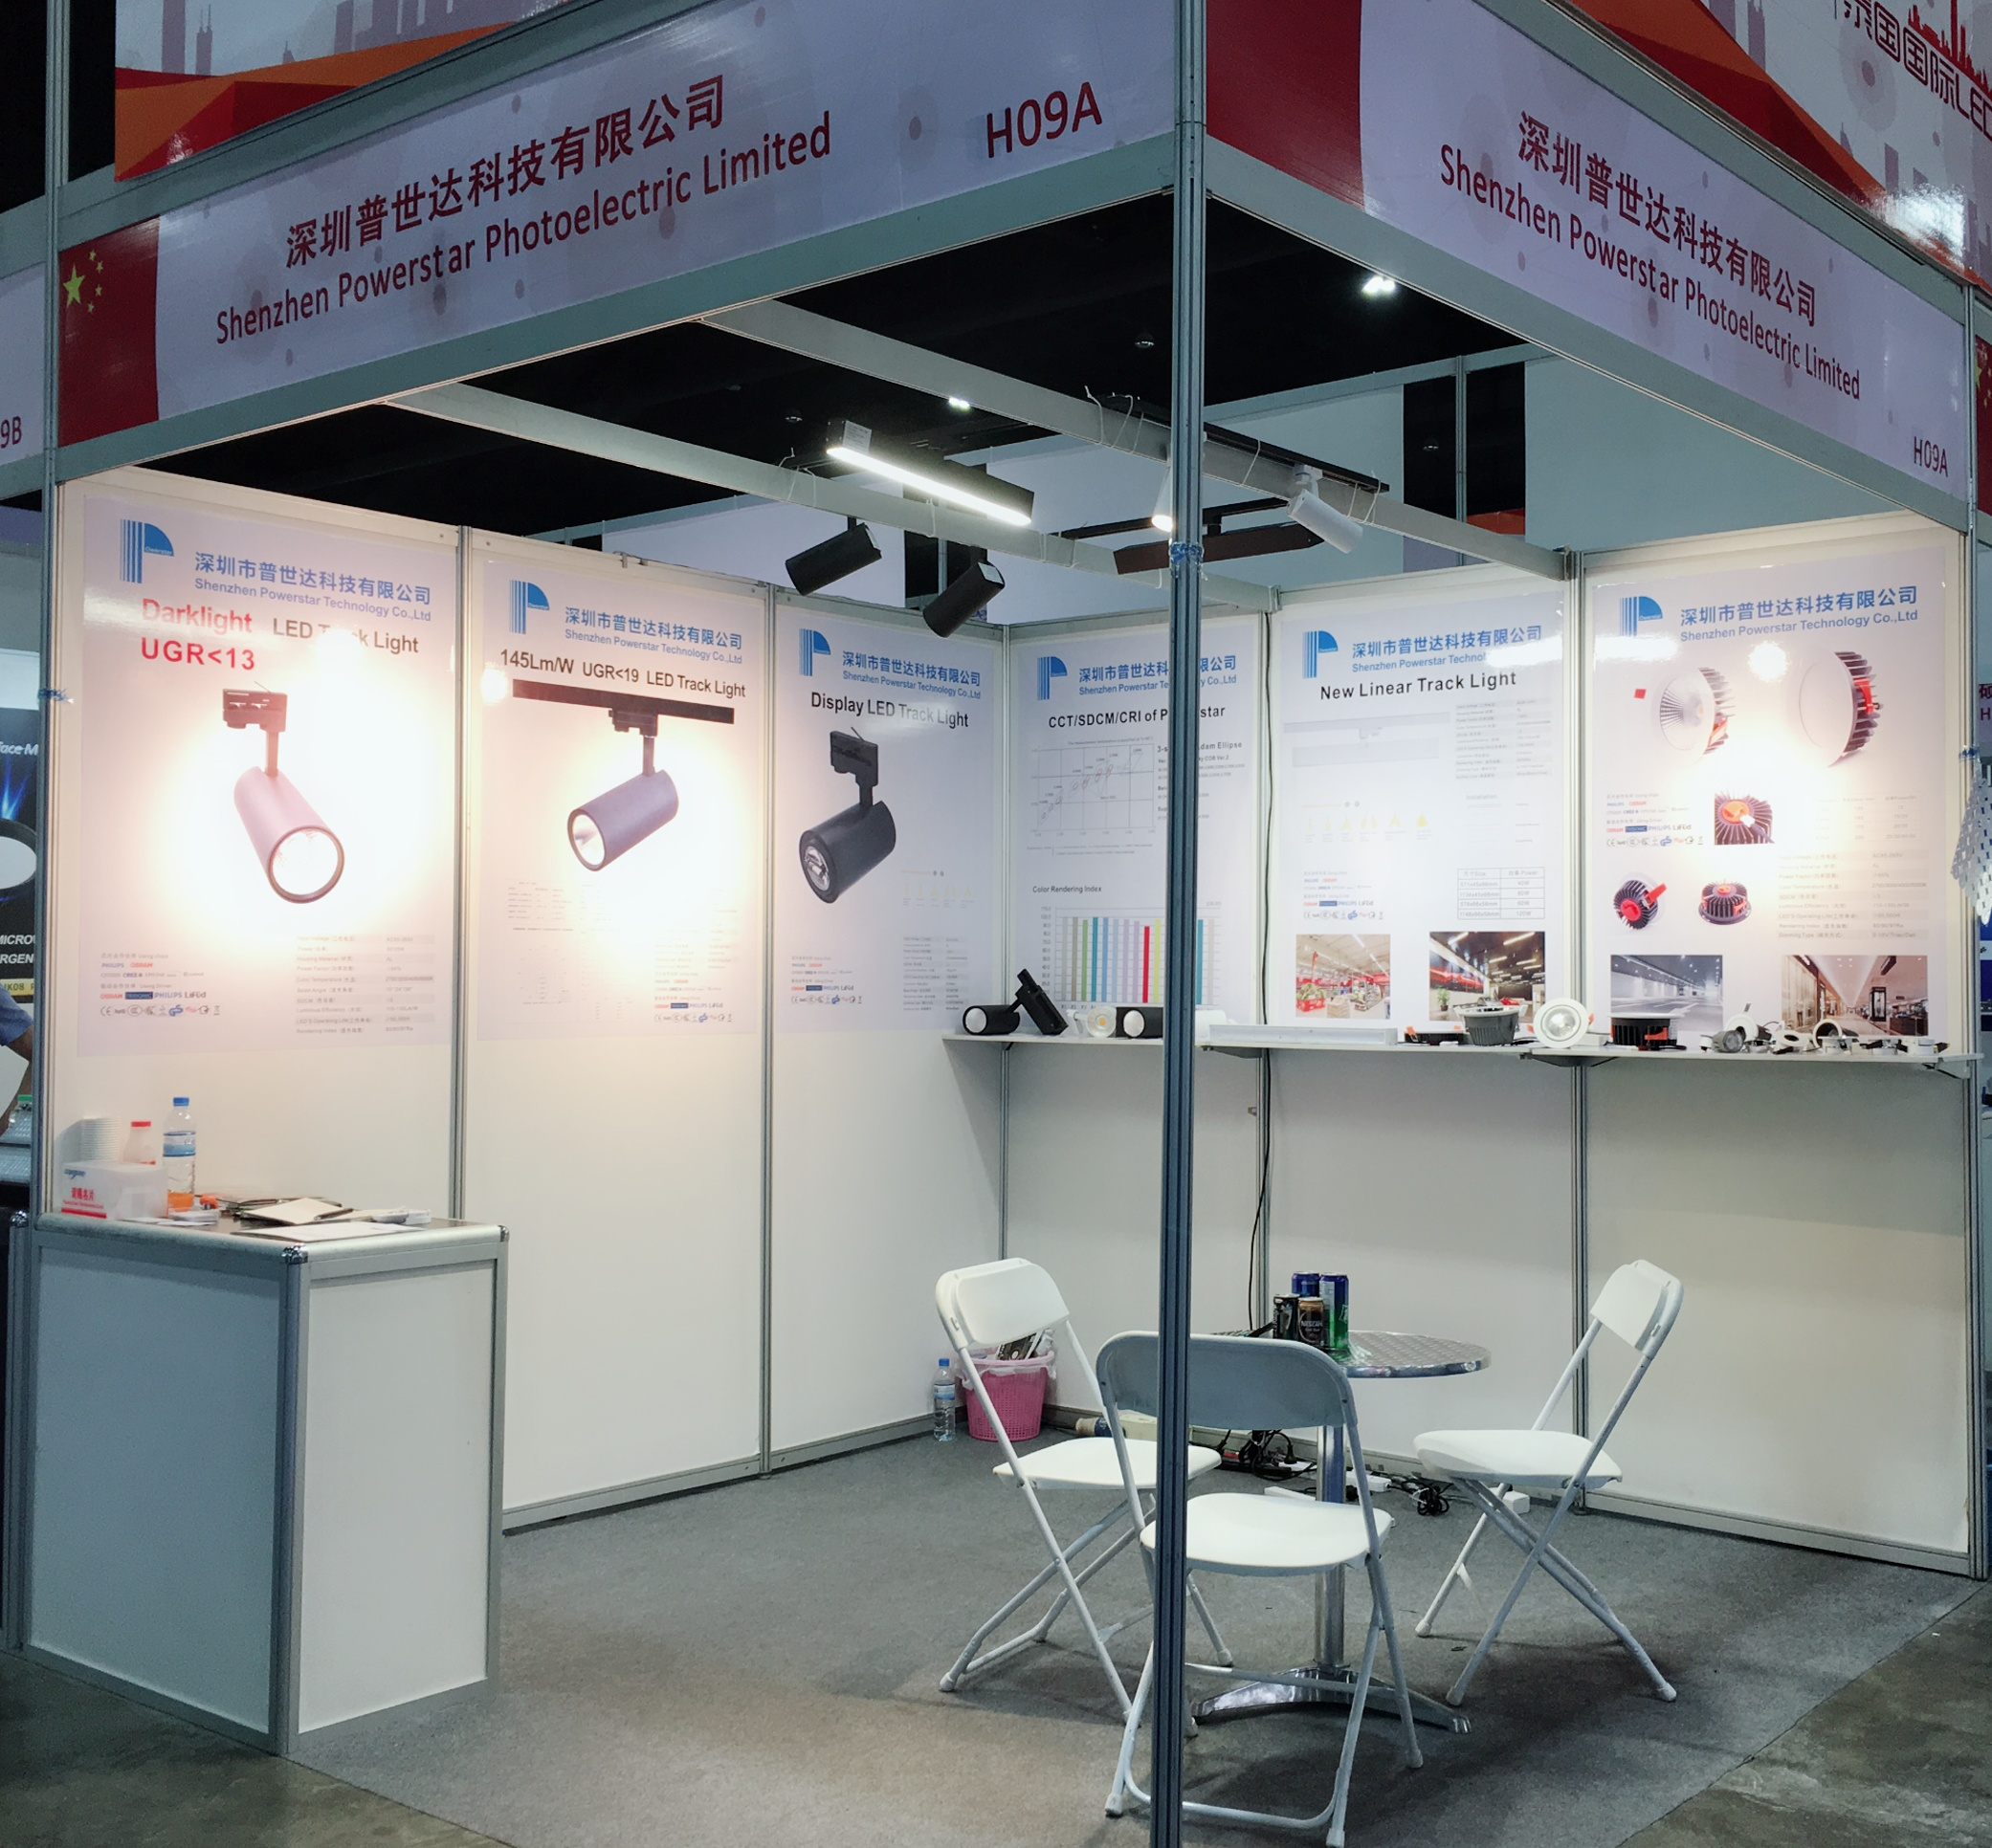 Shenzhen Powerstar on 2018 Thailand LED EXPO